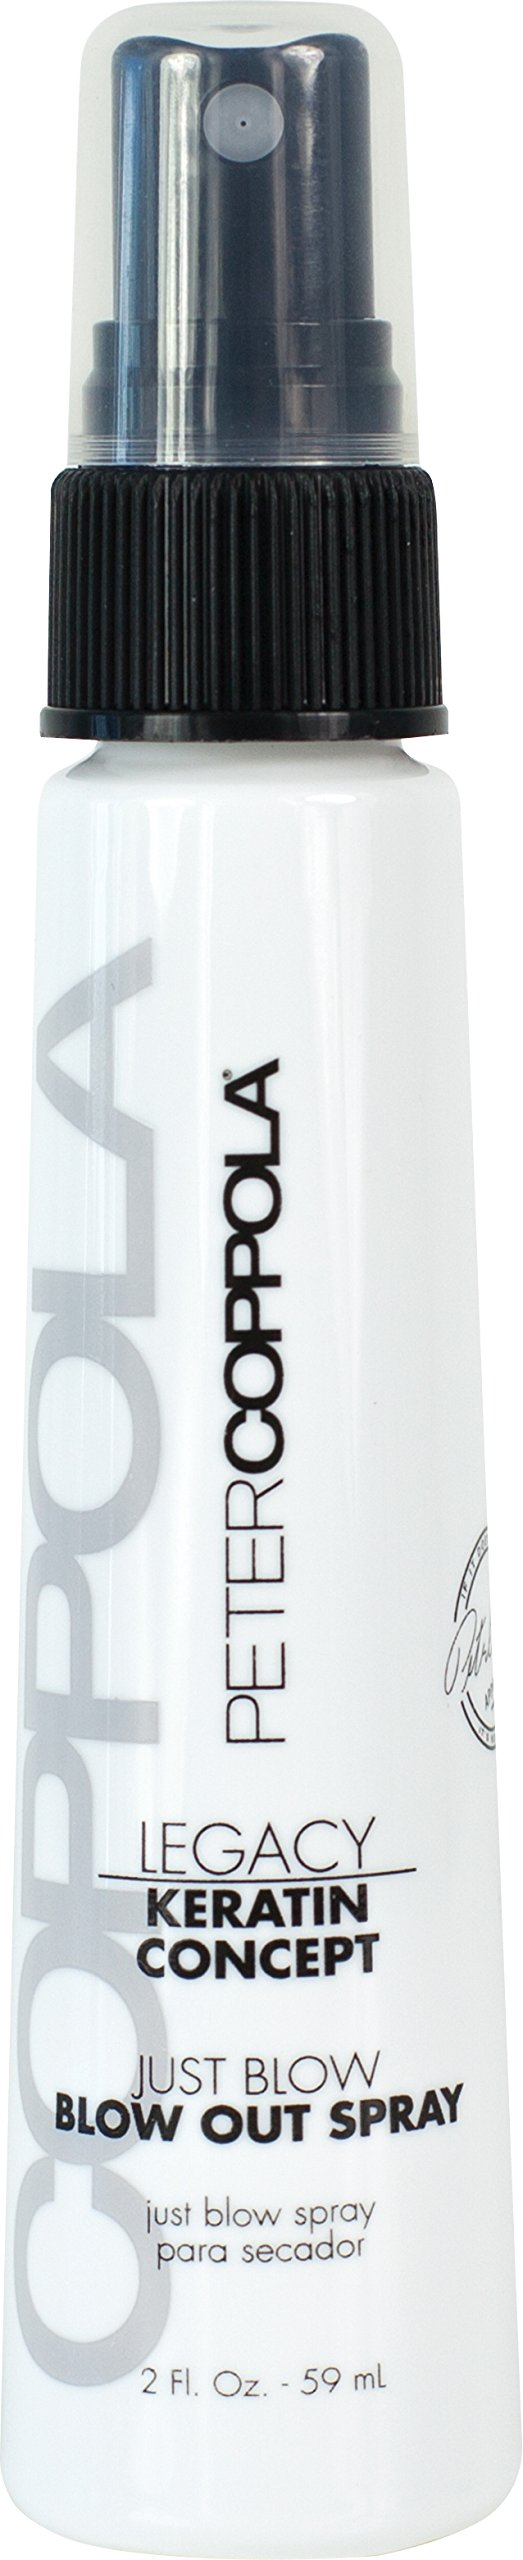 PETER COPPOLA Coppola Keratin Smoothing Treatment Formaldehyde & Aldehyde-Free (Treatment Kit with Aftercare) by Peter Coppola (Image #7)